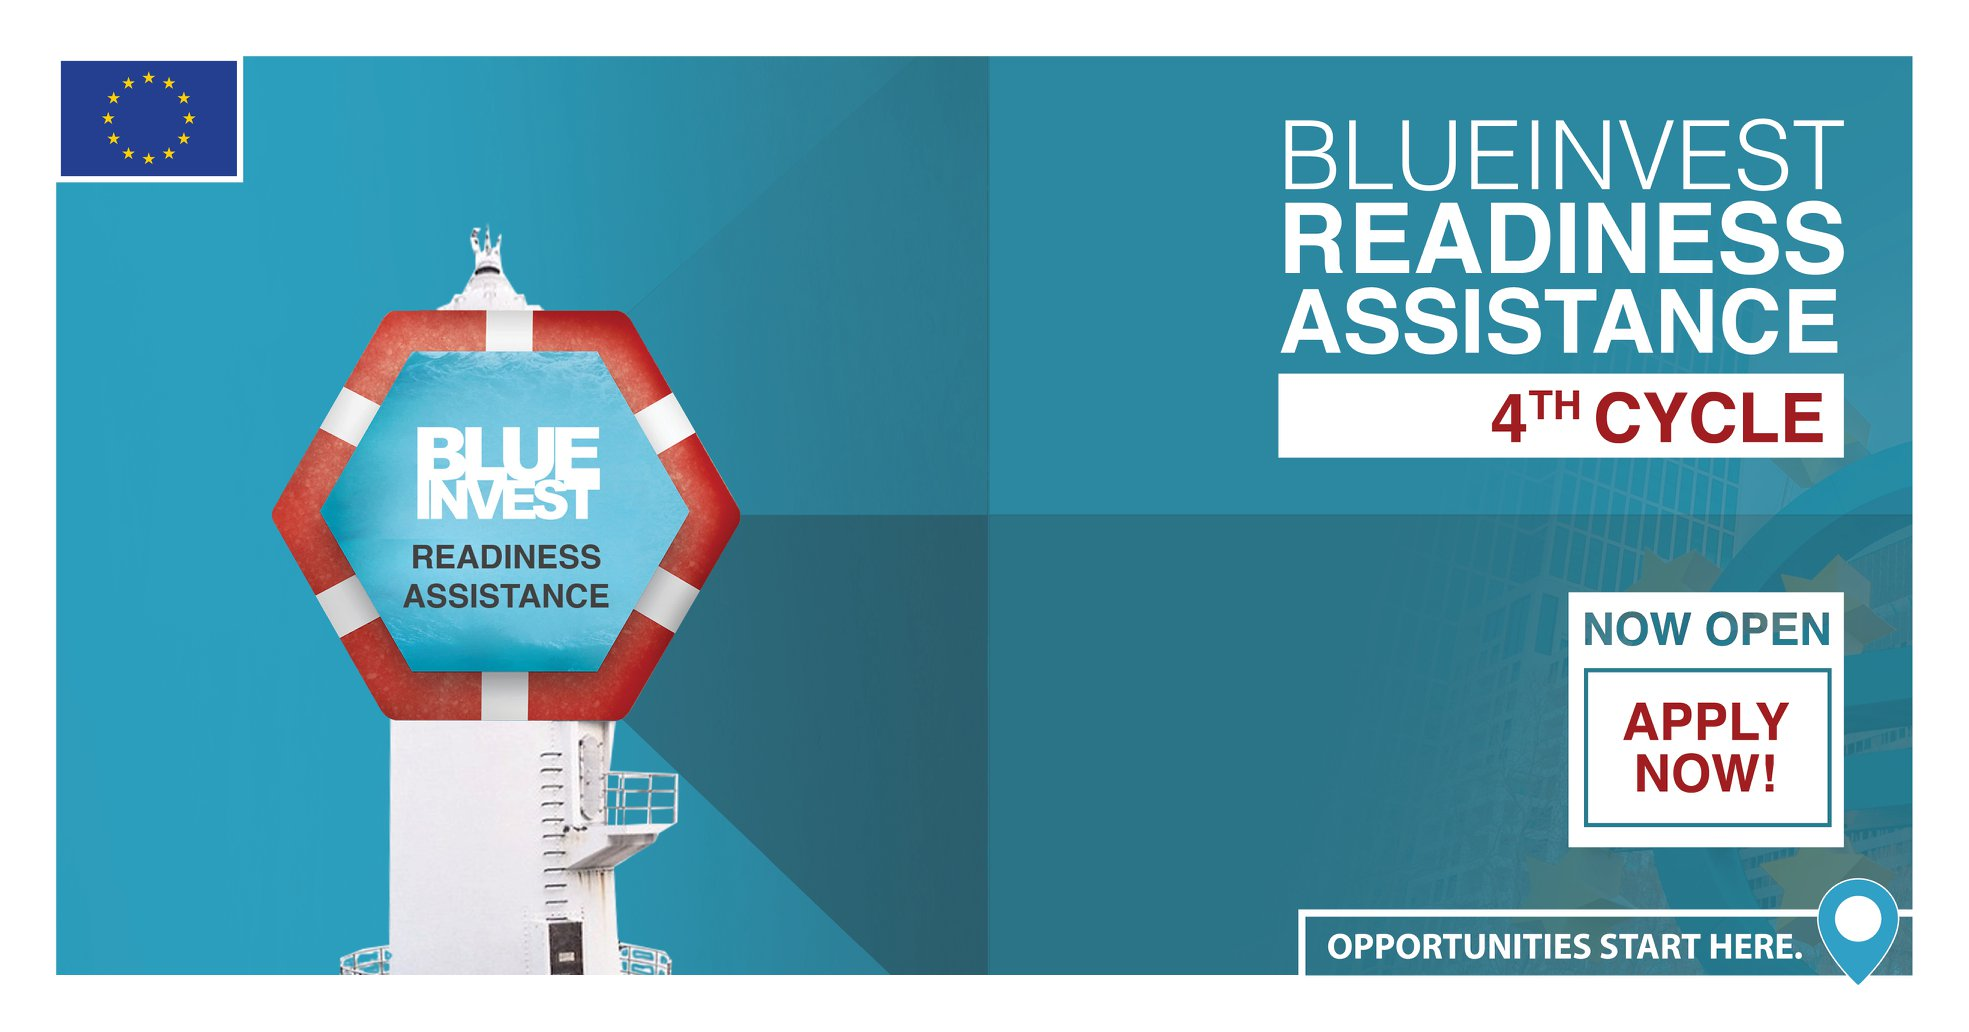 The BlueInvest Readiness Assistance